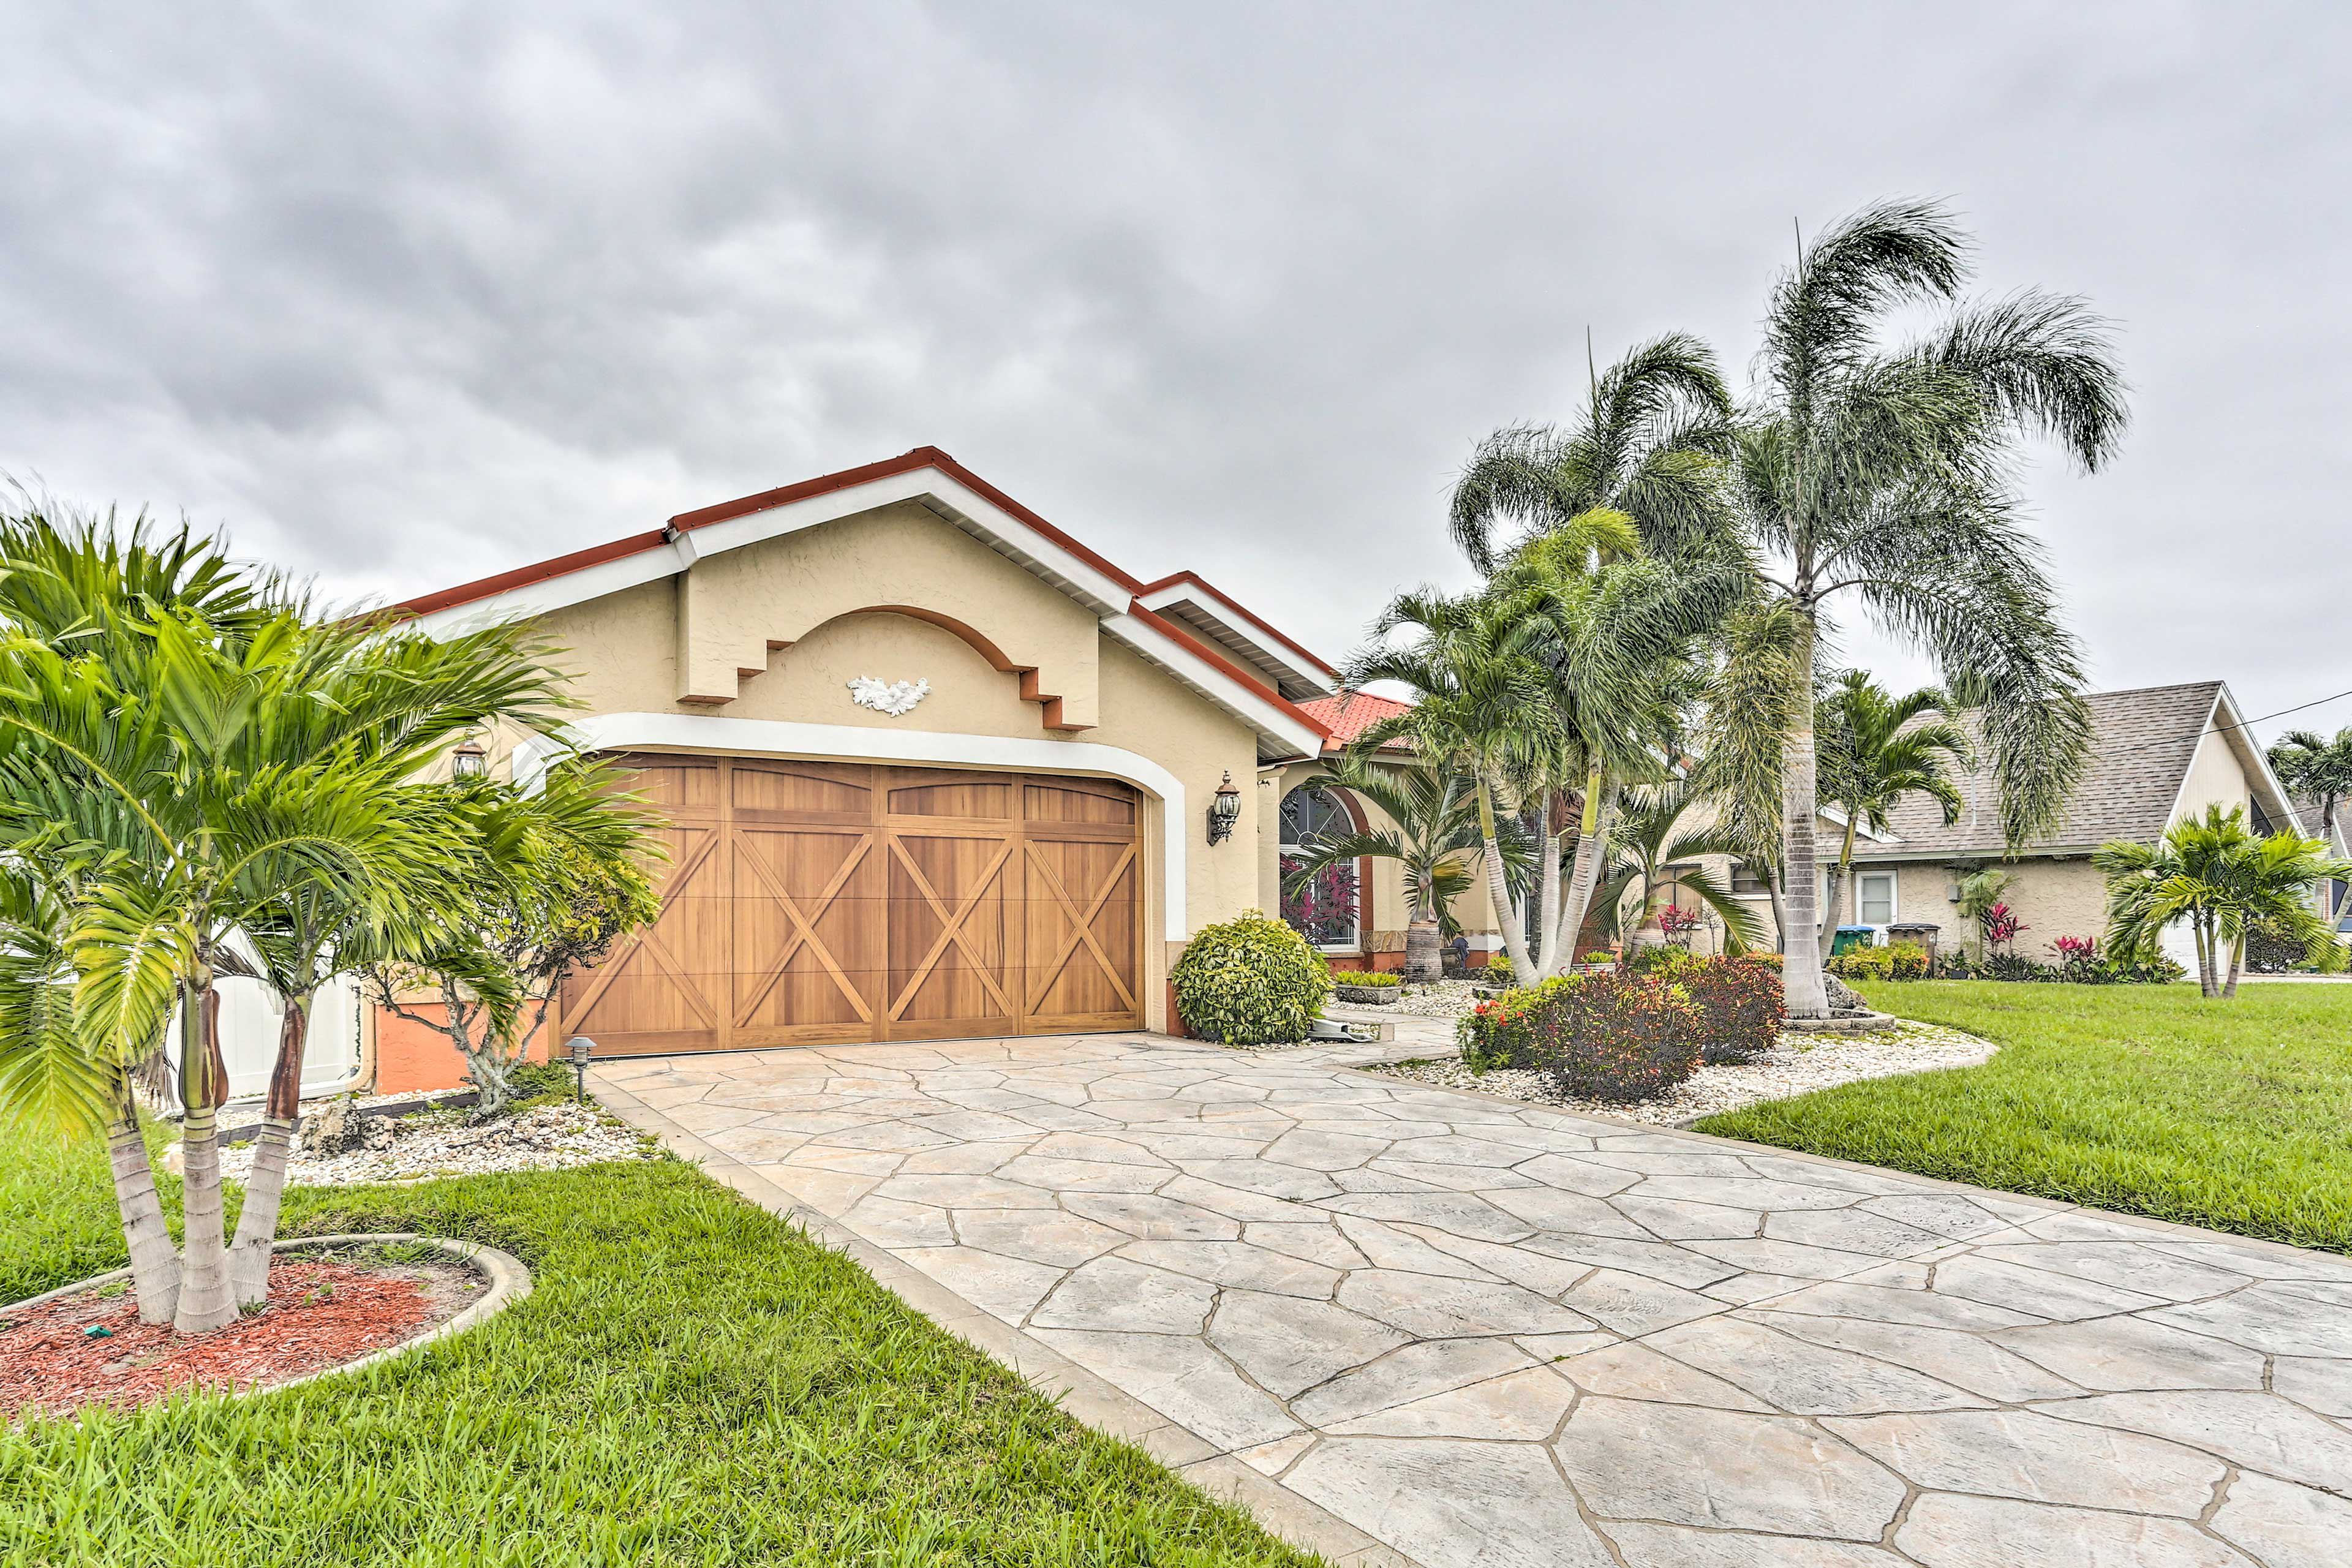 The beautiful garage door and styled driveway provide added curb appeal.